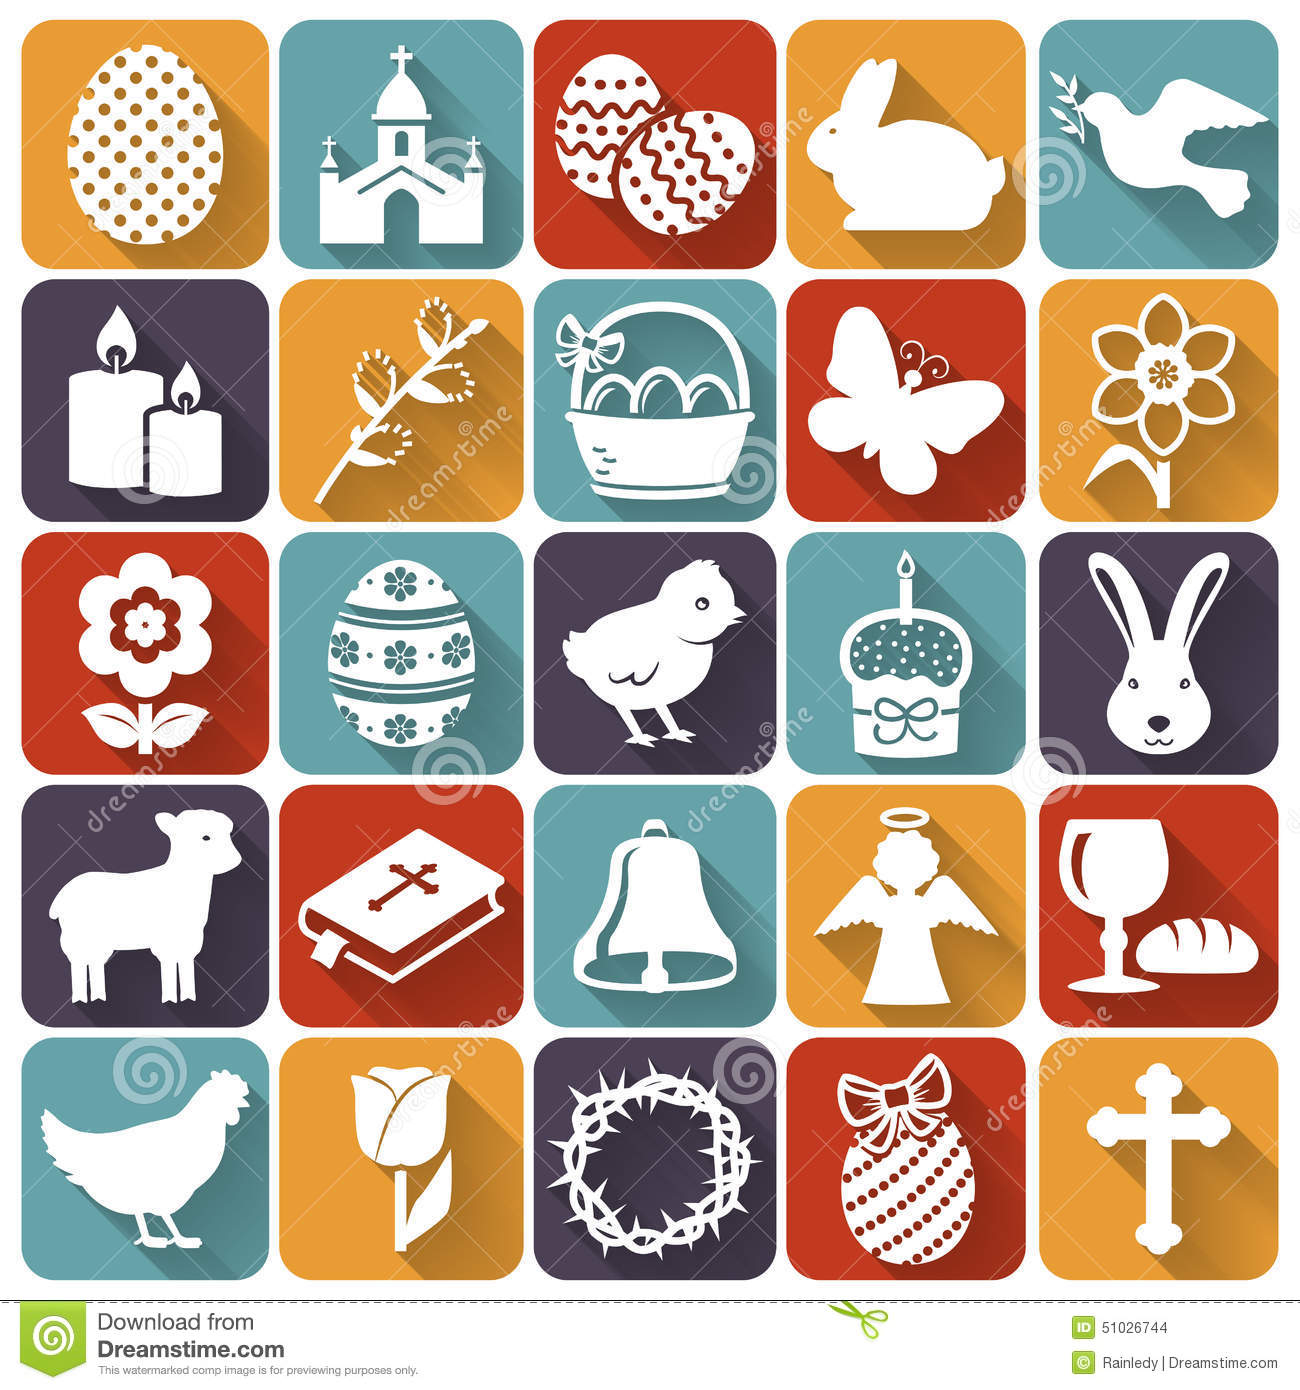 elements of religious traditions paper Elements of religious traditions paper rite a 700- to 1,050-word paper that does the following: odescribes these basic components of religious traditions and their relationship to the.